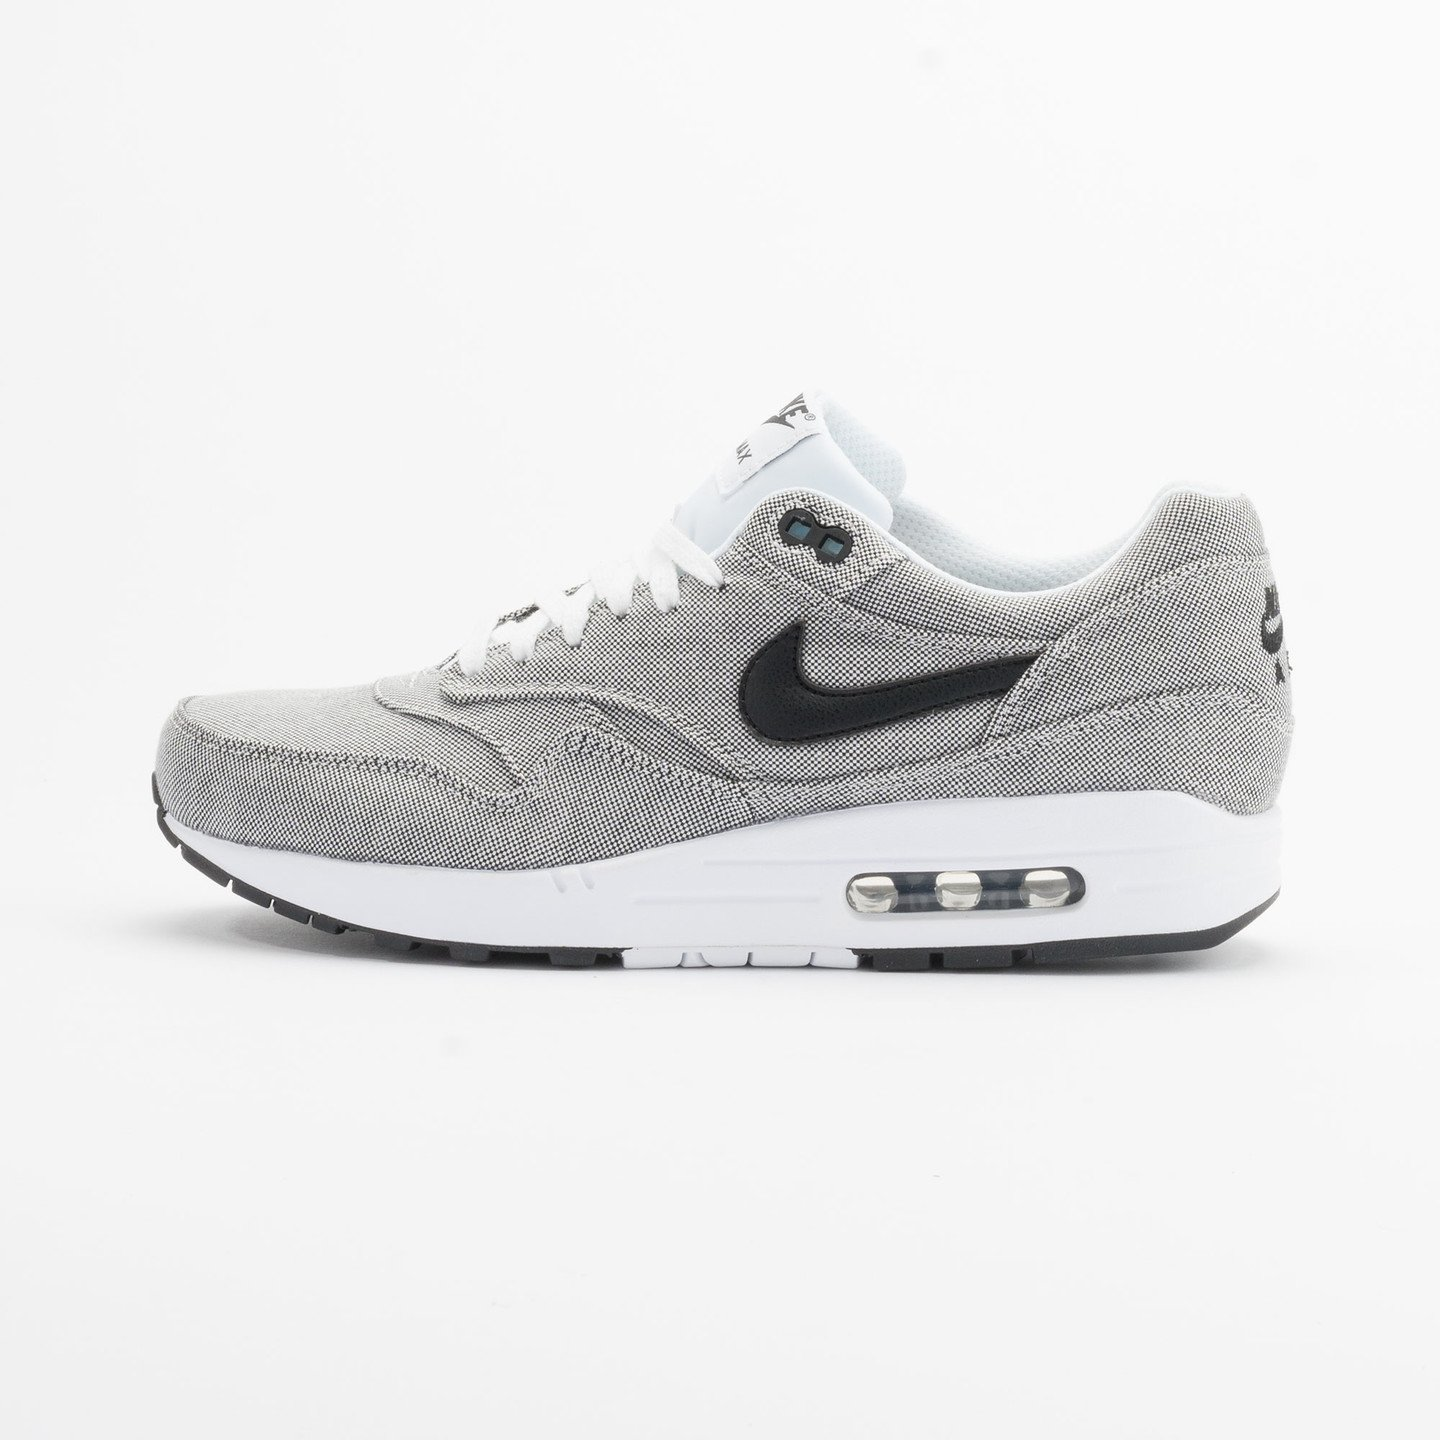 Nike Air Max 1 Prm Picknick Pack Black/White 512033-103-46